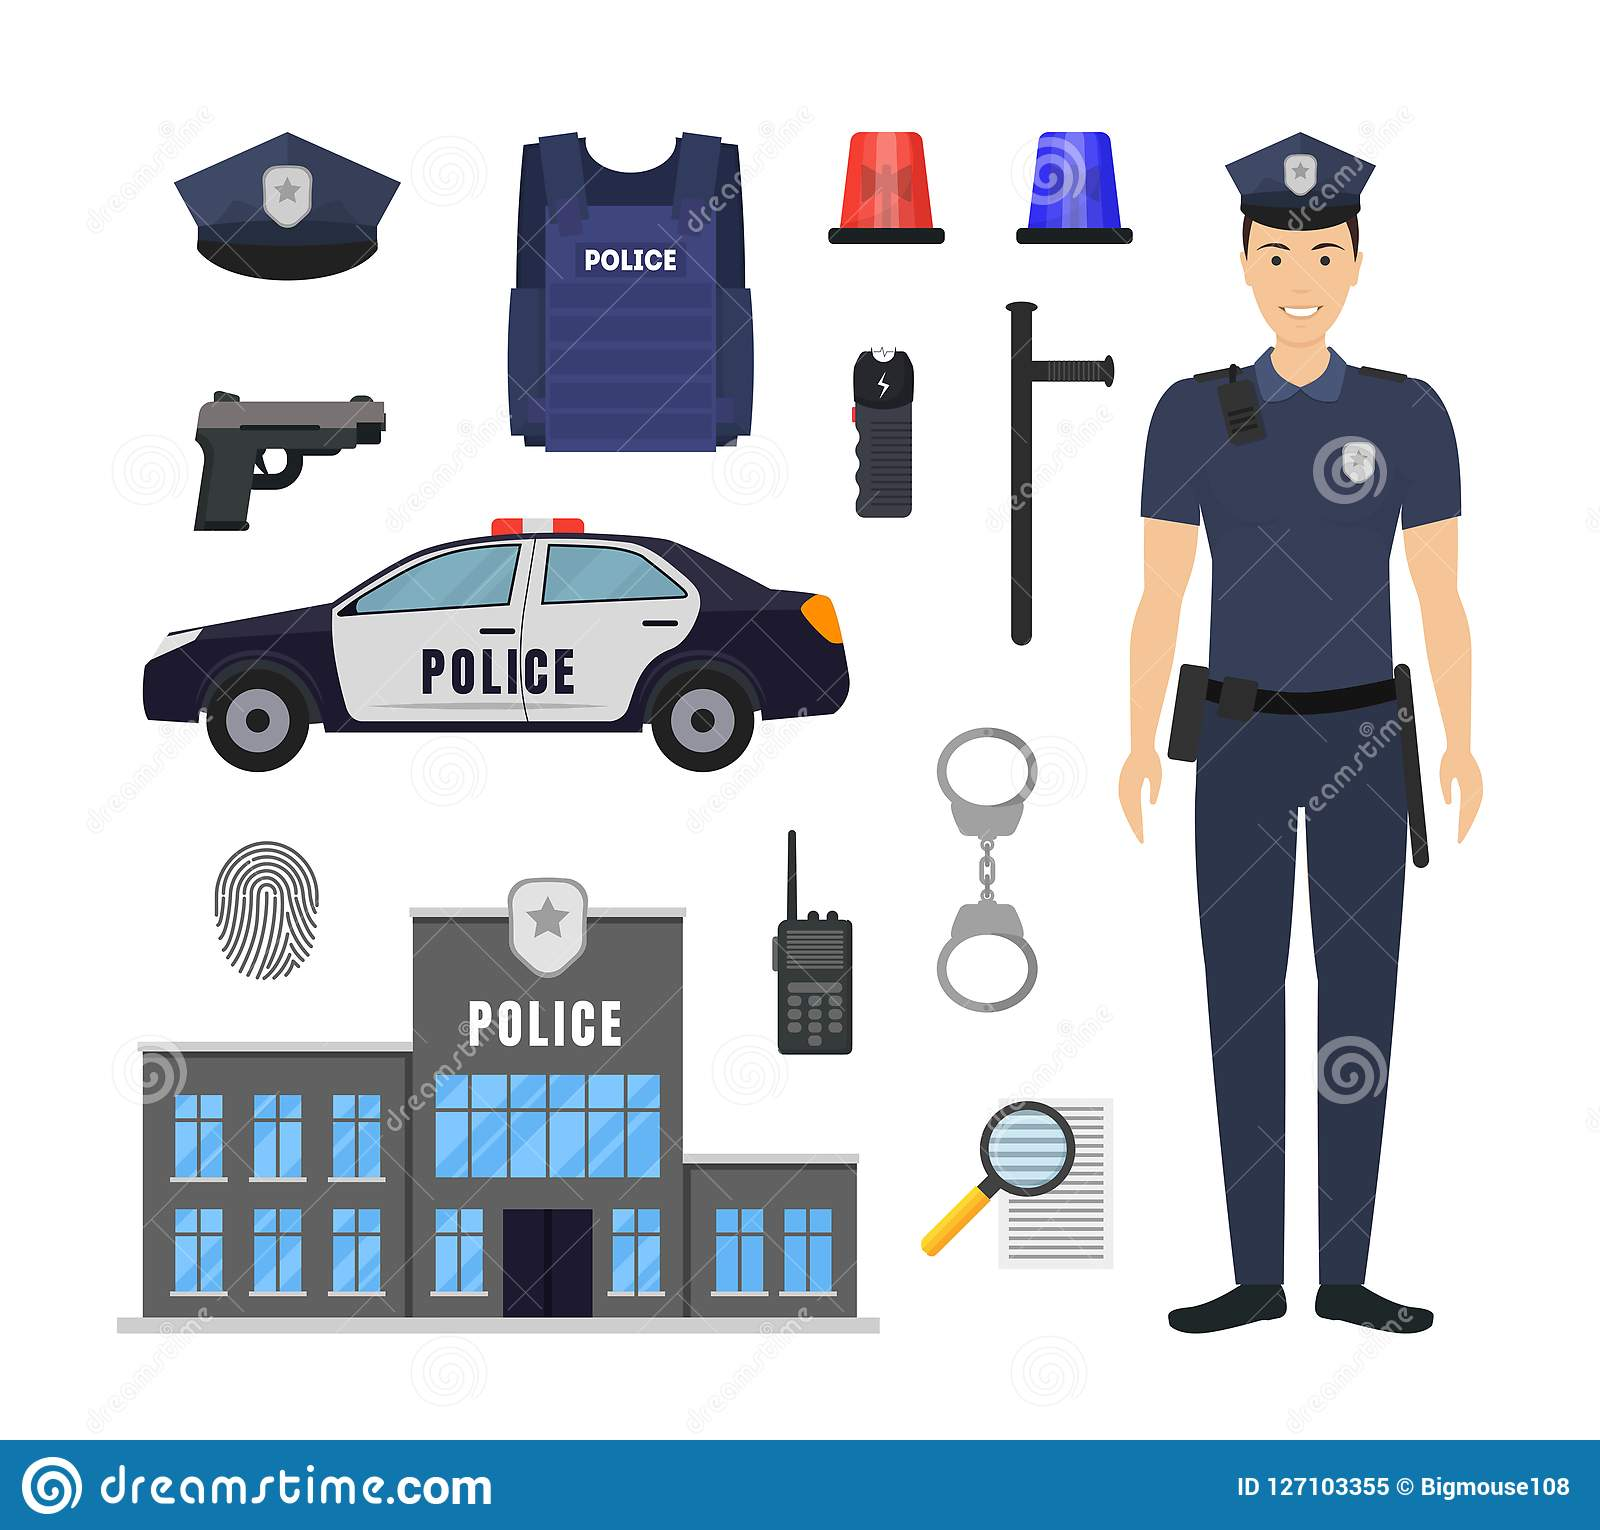 Cartoon Color Policeman and Police Elements Icon Set. Vector